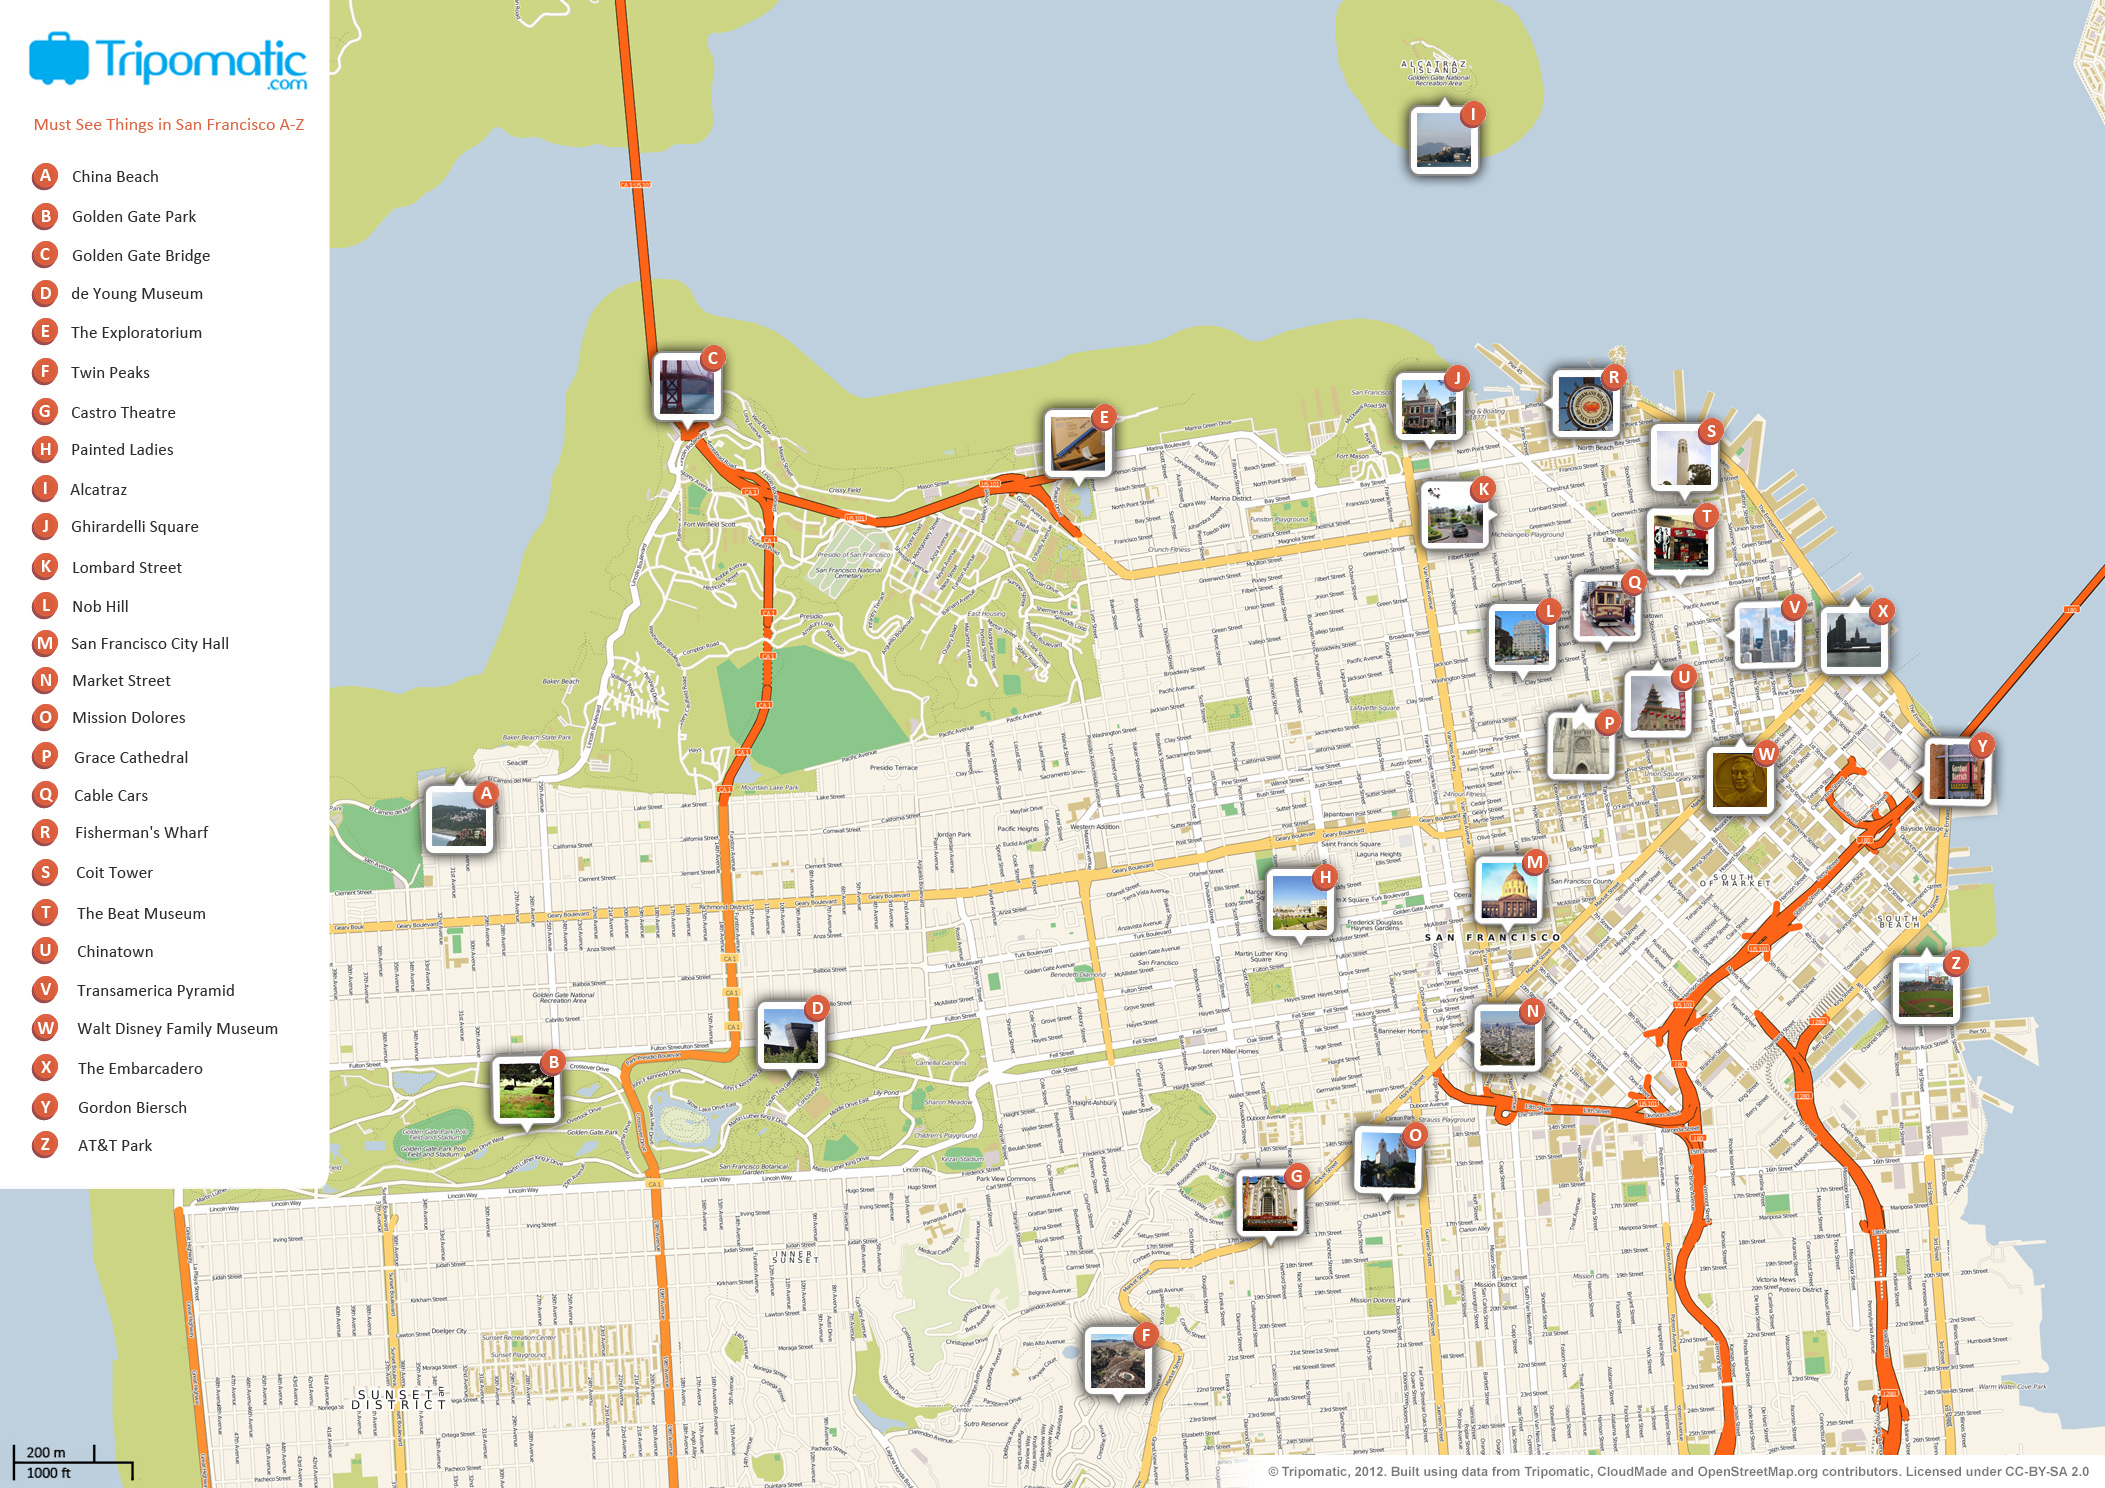 filesan francisco printable tourist attractions map. filesan francisco printable tourist attractions map